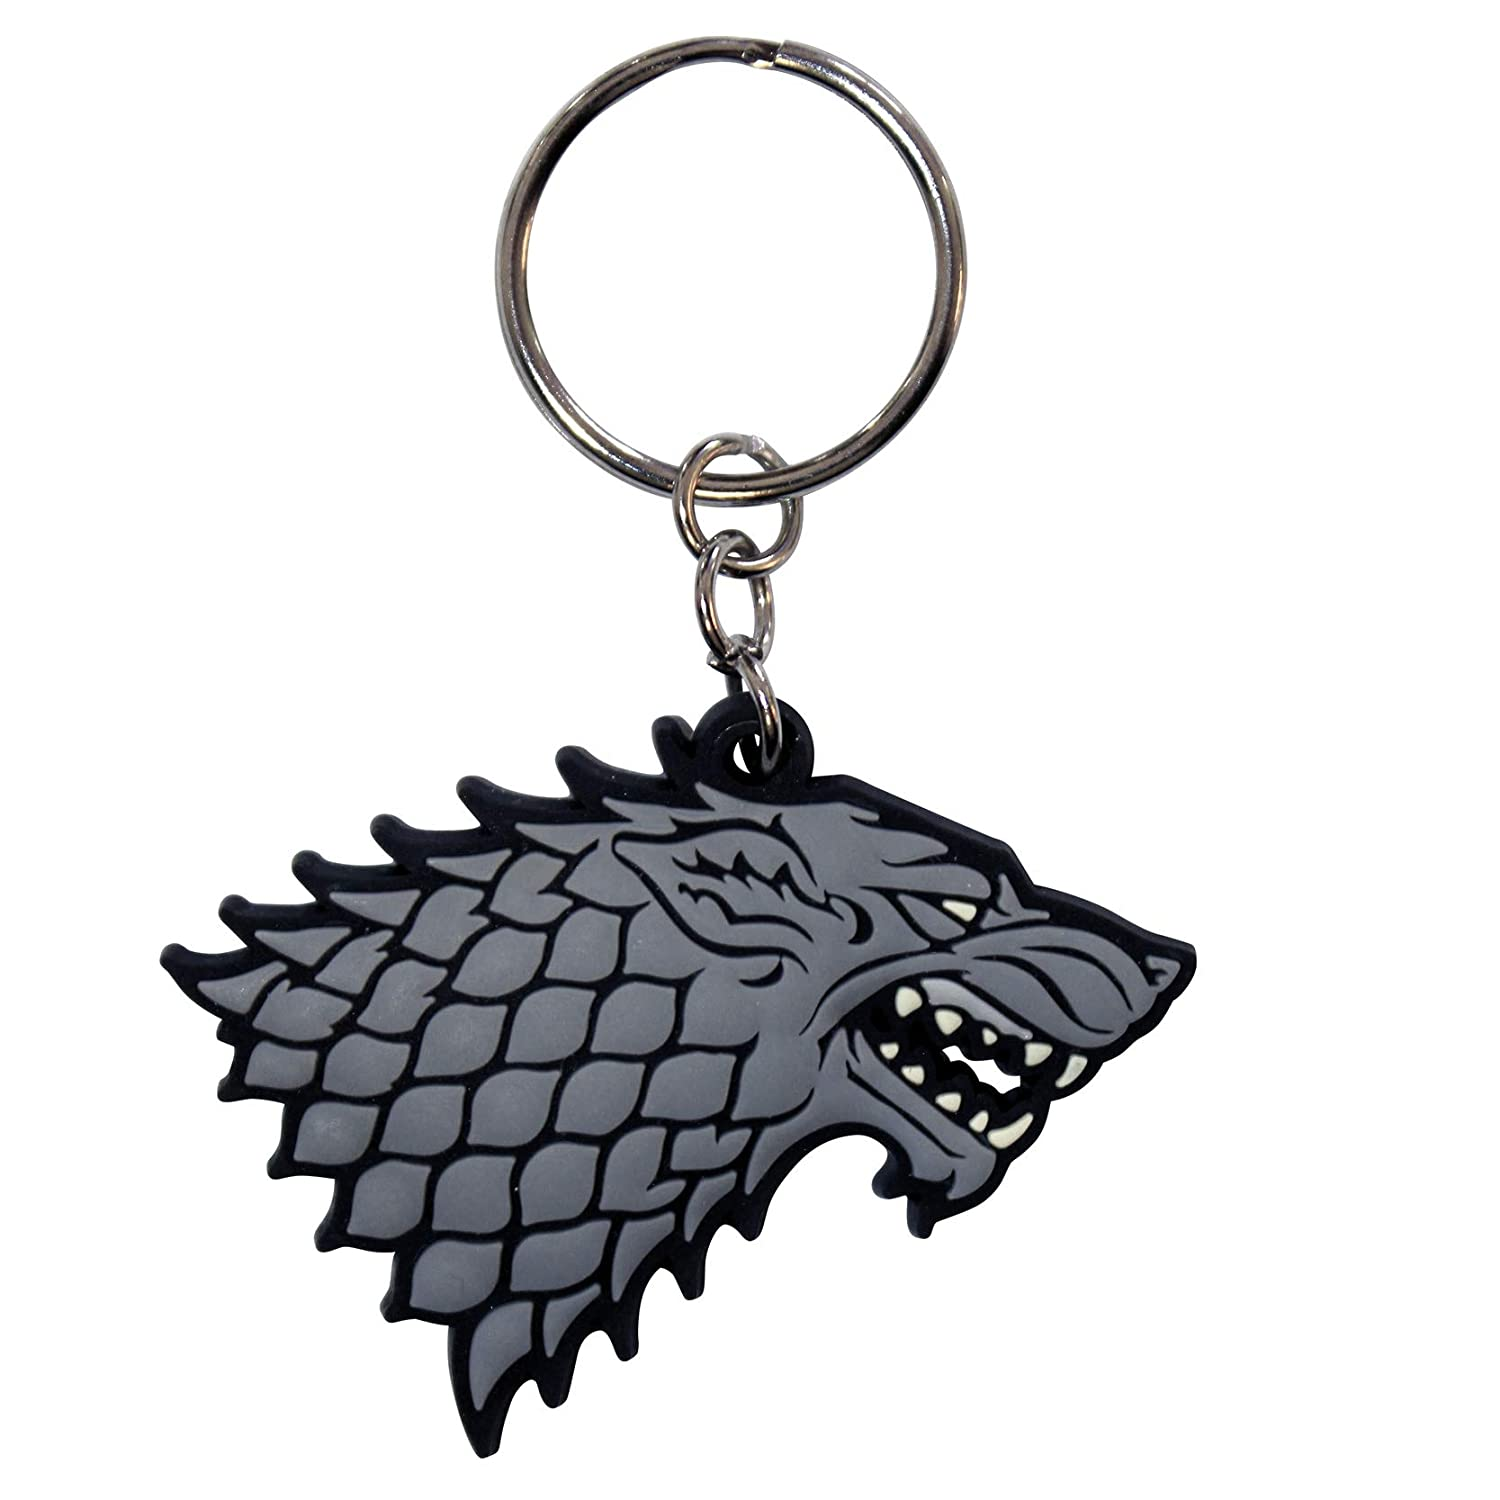 GAME OF THRONES - Keychain PVC Stark X4: Amazon.es: Equipaje